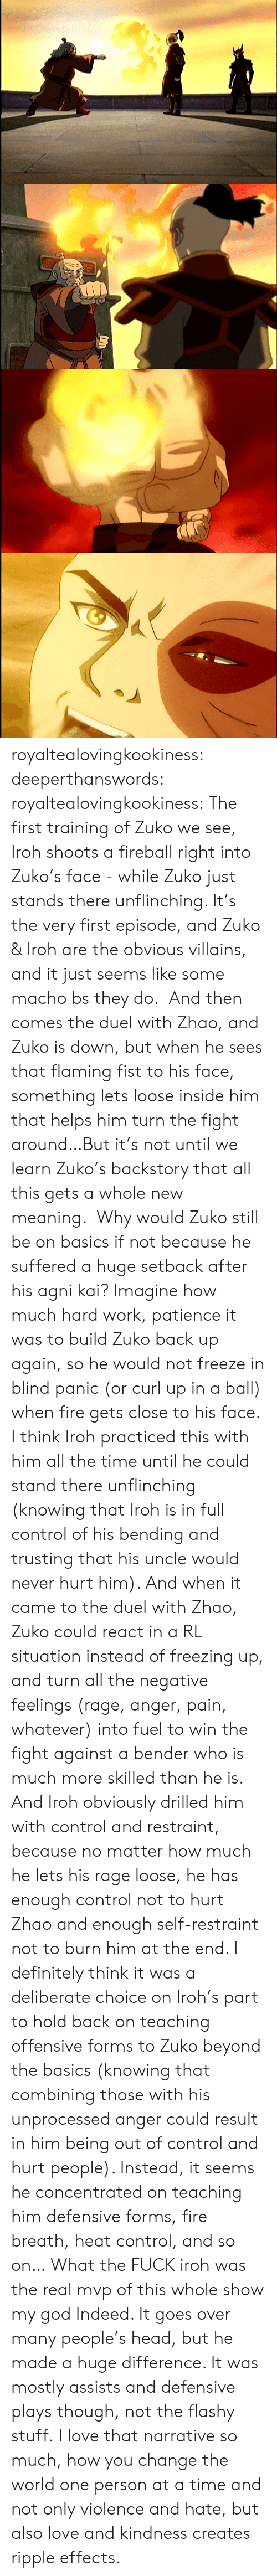 freezing: royaltealovingkookiness: deeperthanswords:  royaltealovingkookiness:   The first training of Zuko we see, Iroh shoots a fireball right into Zuko's face - while Zuko just stands there unflinching. It's the very first episode, and Zuko & Iroh are the obvious villains, and it just seems like some macho bs they do.  And then comes the duel with Zhao, and Zuko is down, but when he sees that flaming fist to his face, something lets loose inside him that helps him turn the fight around…But it's not until we learn Zuko's backstory that all this gets a whole new meaning.  Why would Zuko still be on basics if not because he suffered a huge setback after his agni kai? Imagine how much hard work, patience it was to build Zuko back up again, so he would not freeze in blind panic (or curl up in a ball) when fire gets close to his face. I think Iroh practiced this with him all the time until he could stand there unflinching (knowing that Iroh is in full control of his bending and trusting that his uncle would never hurt him). And when it came to the duel with Zhao, Zuko could react in a RL situation instead of freezing up, and turn all the negative feelings (rage, anger, pain, whatever) into fuel to win the fight against a bender who is much more skilled than he is.  And Iroh obviously drilled him with control and restraint, because no matter how much he lets his rage loose, he has enough control not to hurt Zhao and enough self-restraint not to burn him at the end. I definitely think it was a deliberate choice on Iroh's part to hold back on teaching offensive forms to Zuko beyond the basics (knowing that combining those with his unprocessed anger could result in him being out of control and hurt people). Instead, it seems he concentrated on teaching him defensive forms, fire breath, heat control, and so on…   What the FUCK iroh was the real mvp of this whole show my god  Indeed. It goes over many people's head, but he made a huge difference. It was mostly assists and defensive plays though, not the flashy stuff. I love that narrative so much, how you change the world one person at a time and not only violence and hate, but also love and kindness creates ripple effects.